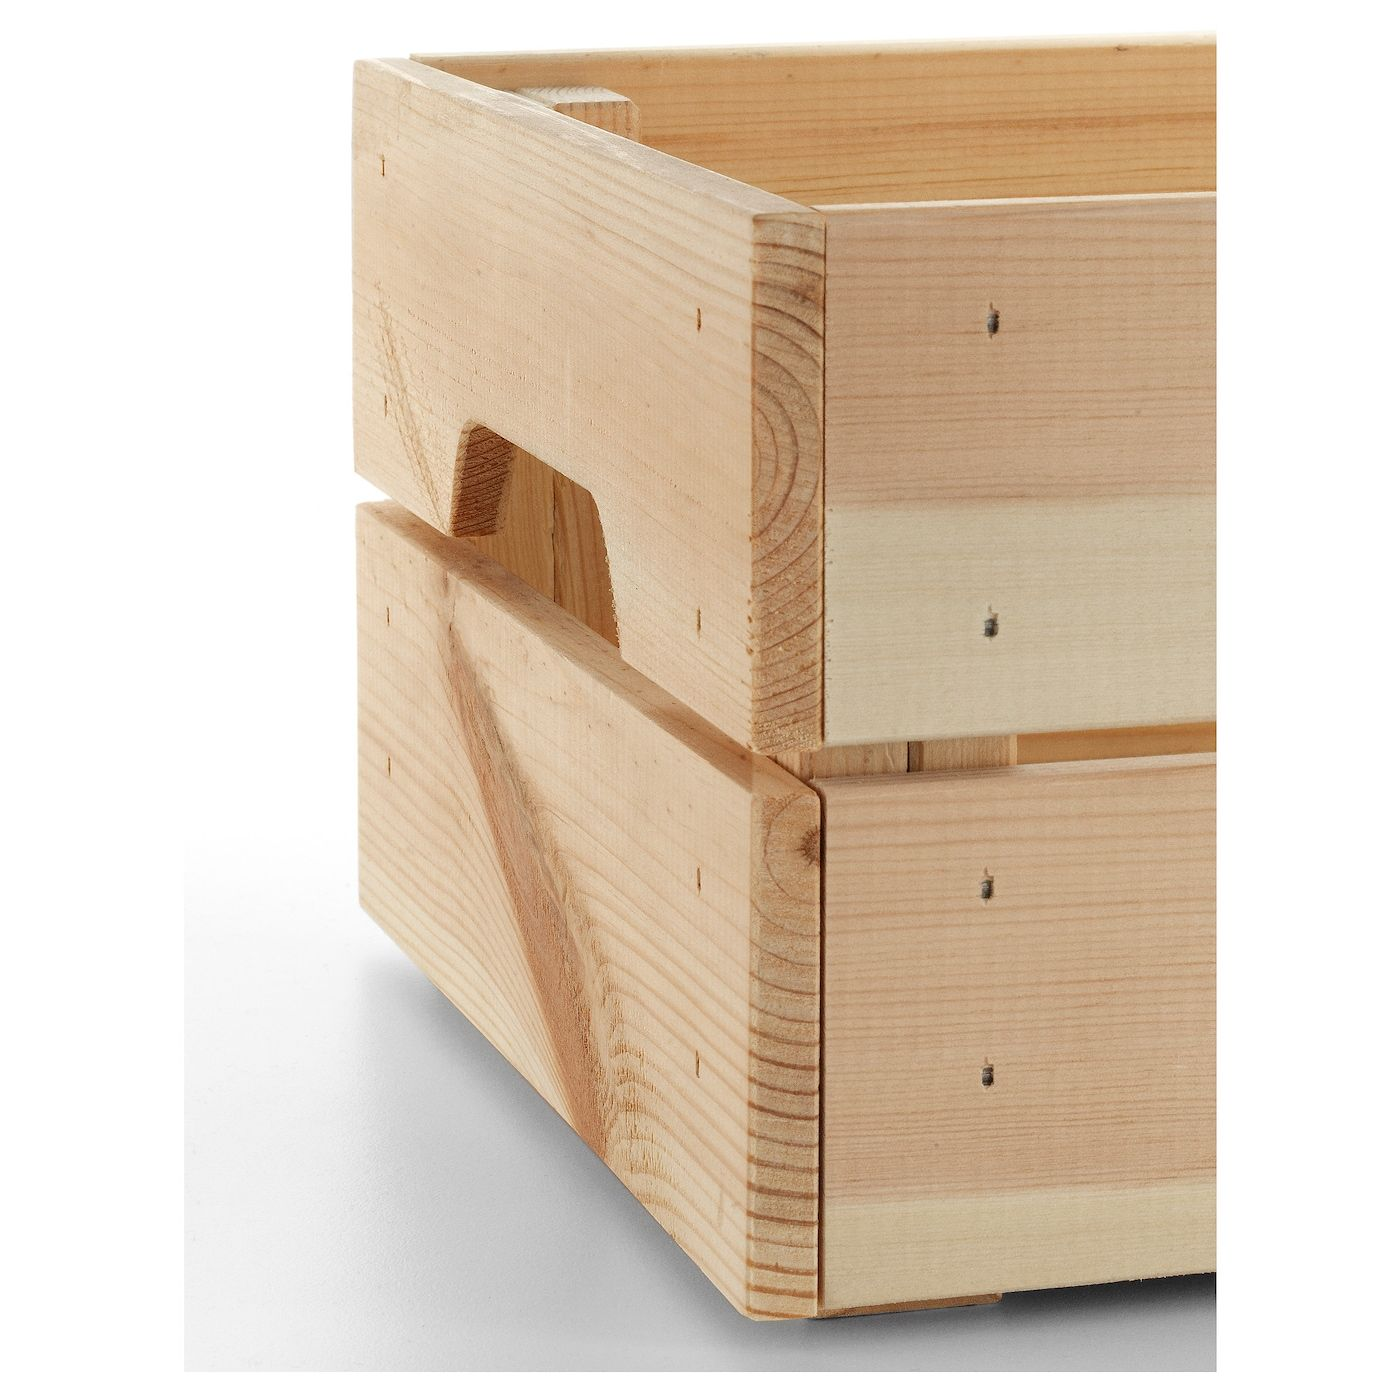 Knagglig Box Pine 23x31x15 Cm Ikea Wooden Boxes Wooden Crates